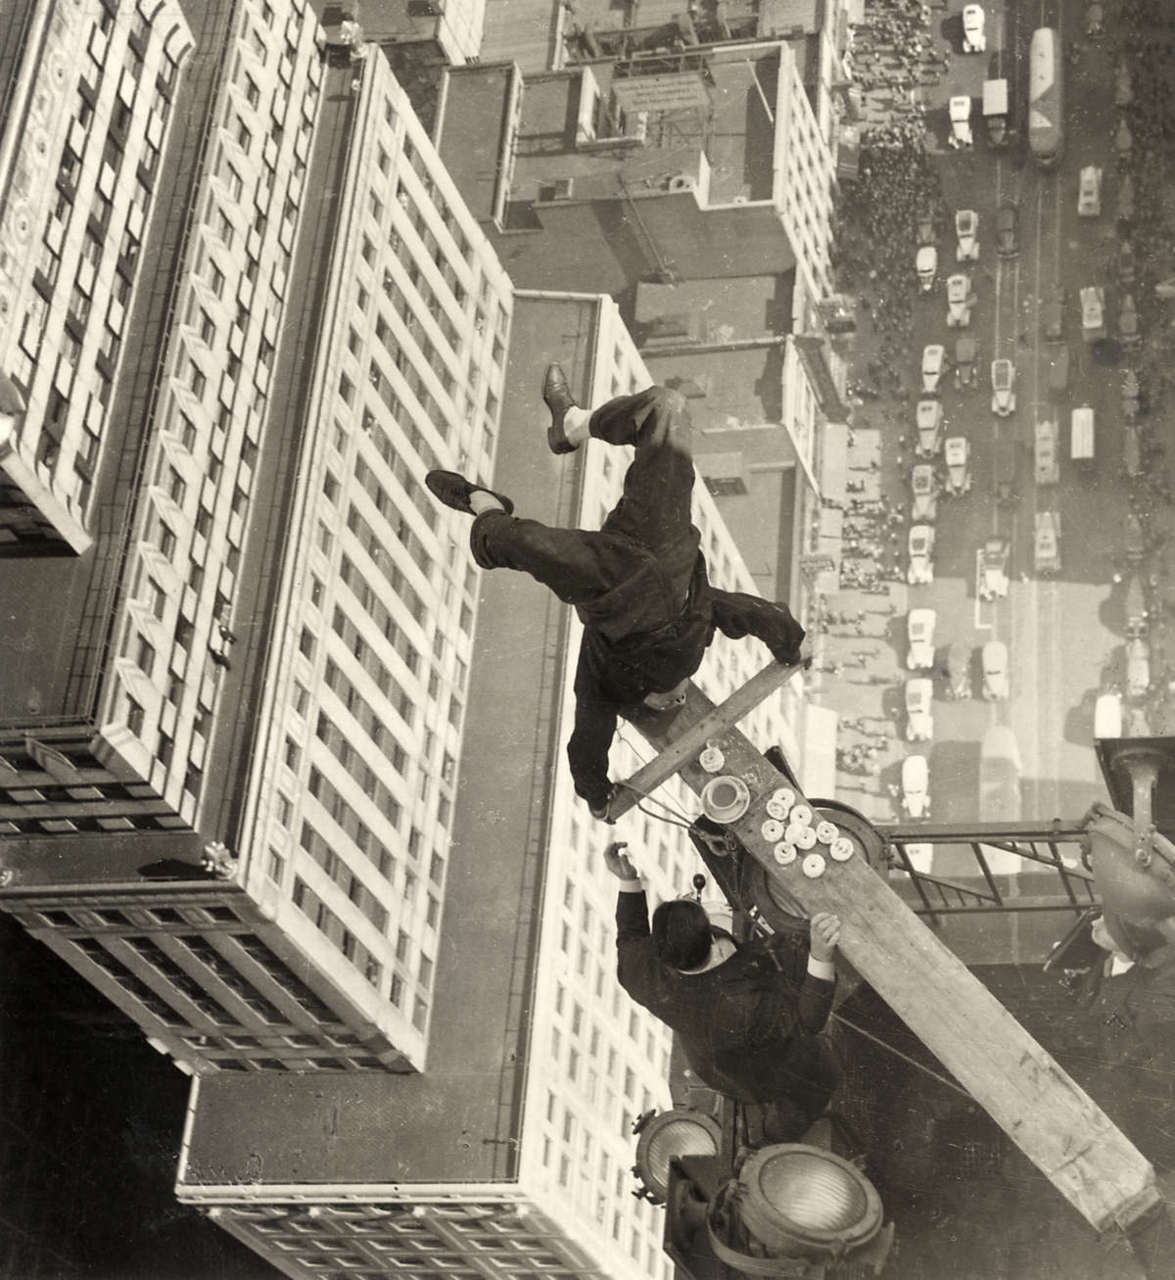 Working Atop On The Roof Of A Skyscraper 1939 Vintage